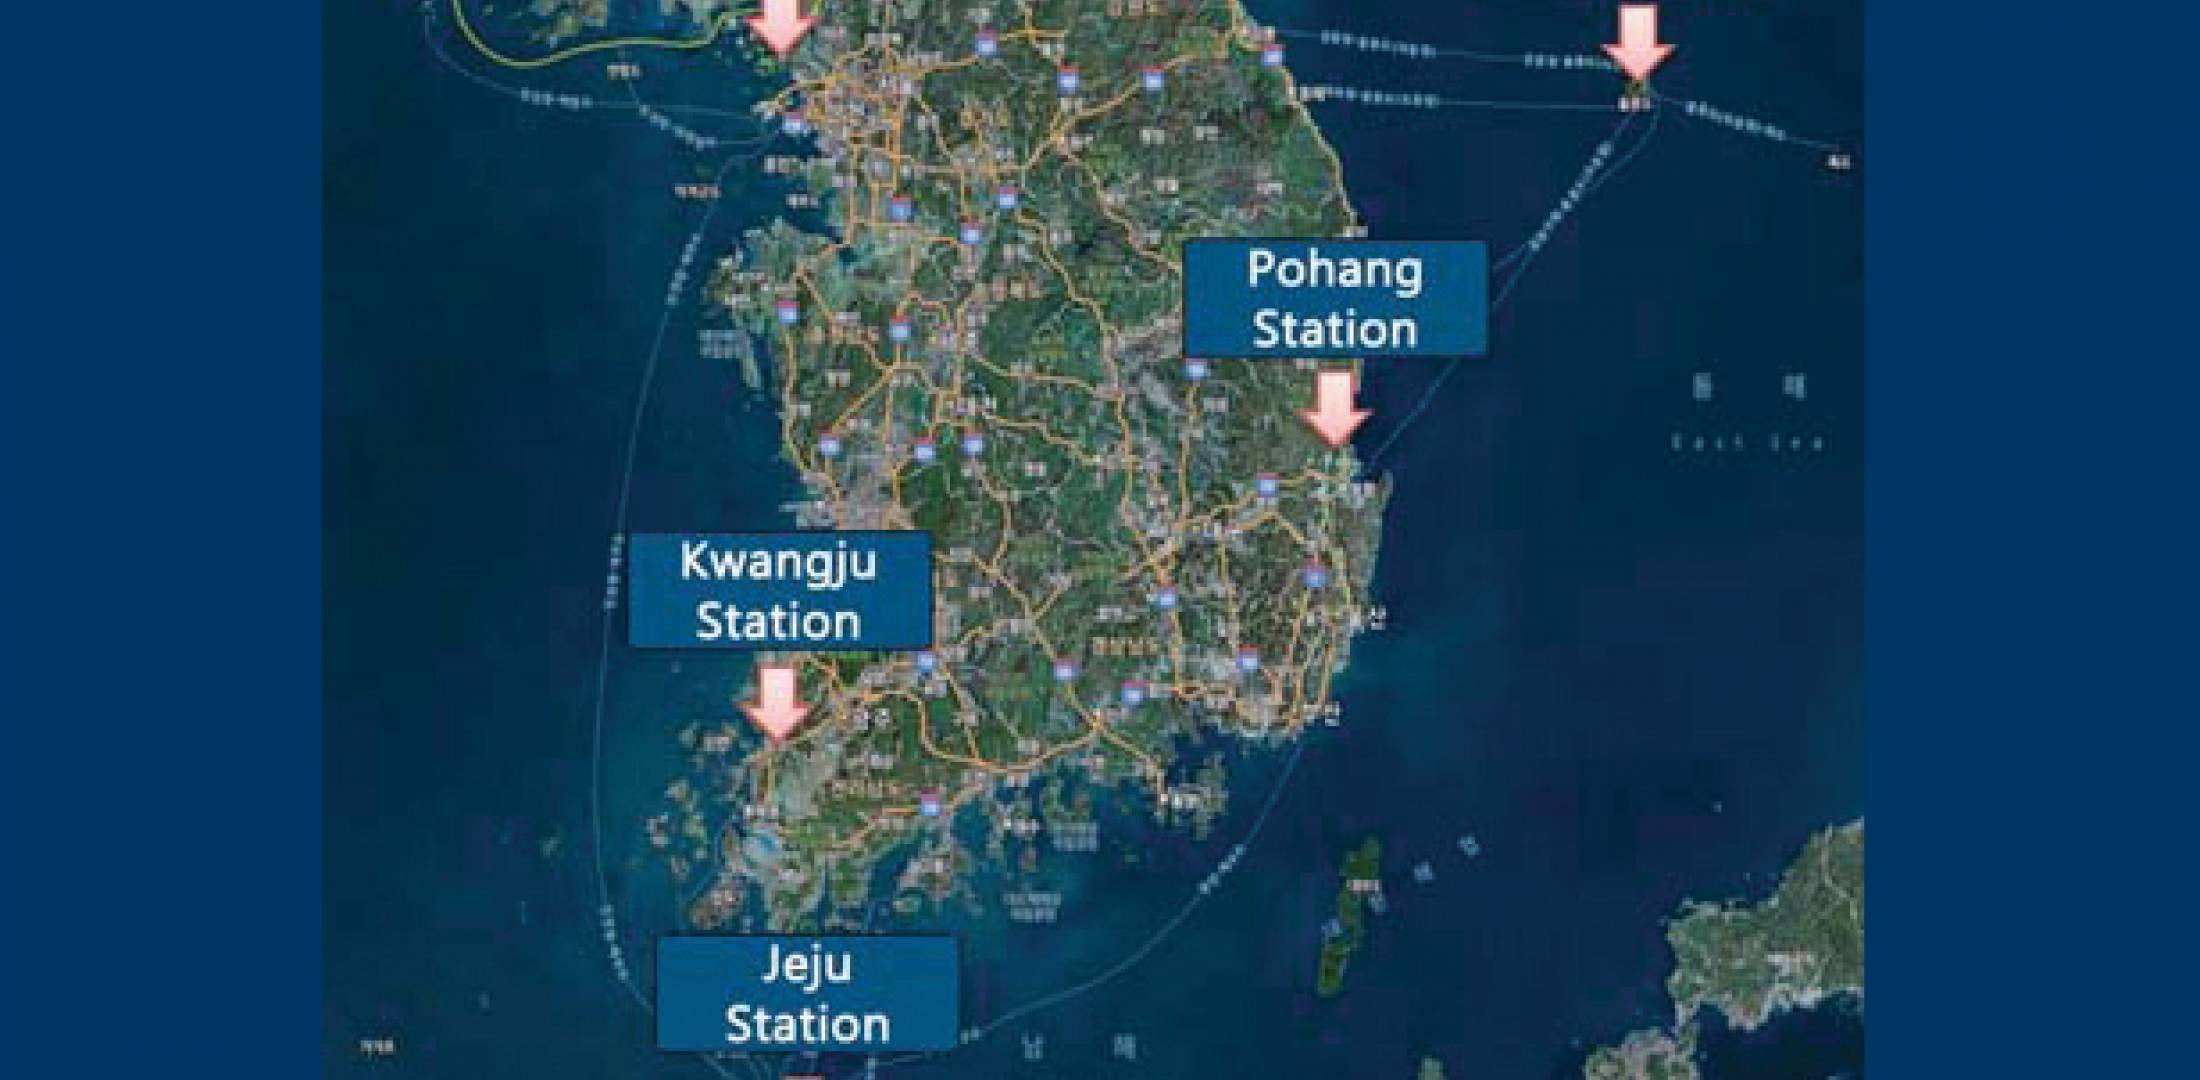 South Korea plans to provide radio navigation coverage with five stations–two legacy loran-C stations (in Pohang and Kwangju) and three yet-to-be built eLoran stations.